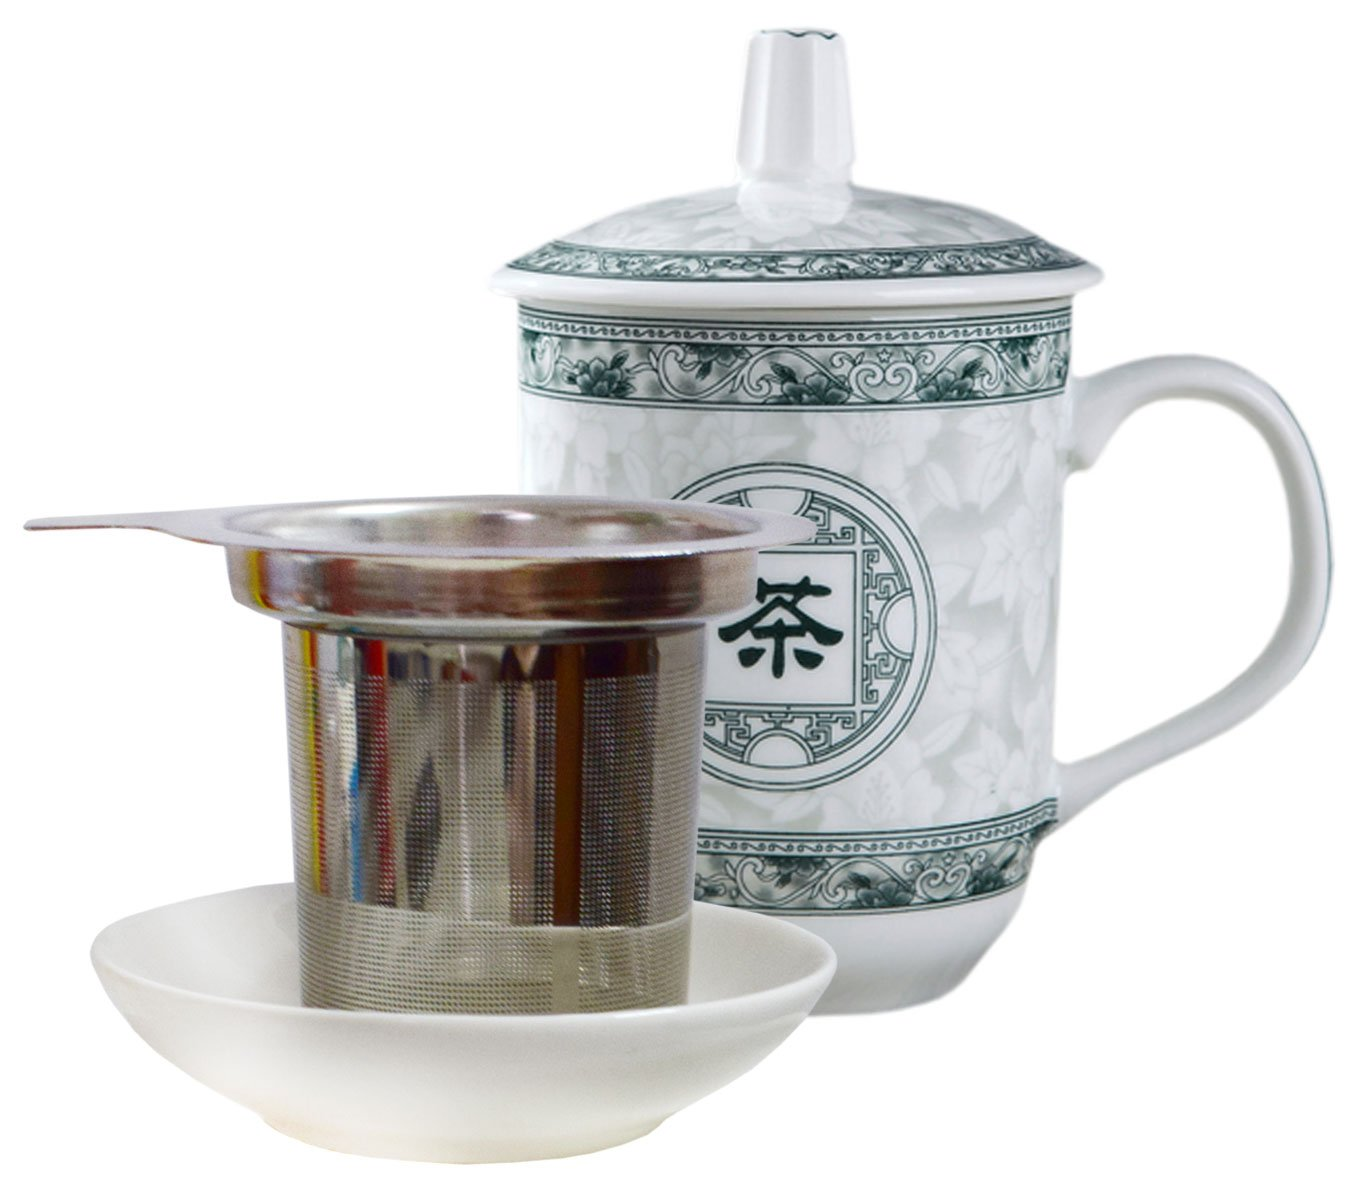 BandTie Convenient Travel Office Loose Leaf Tea Brewing System-Chinese Gongfu Tea Maker Ceramics Tea Cup Stainless Steel Infuser 4-Piece Set with Tea Cup Lid and Saucer,Tea Word